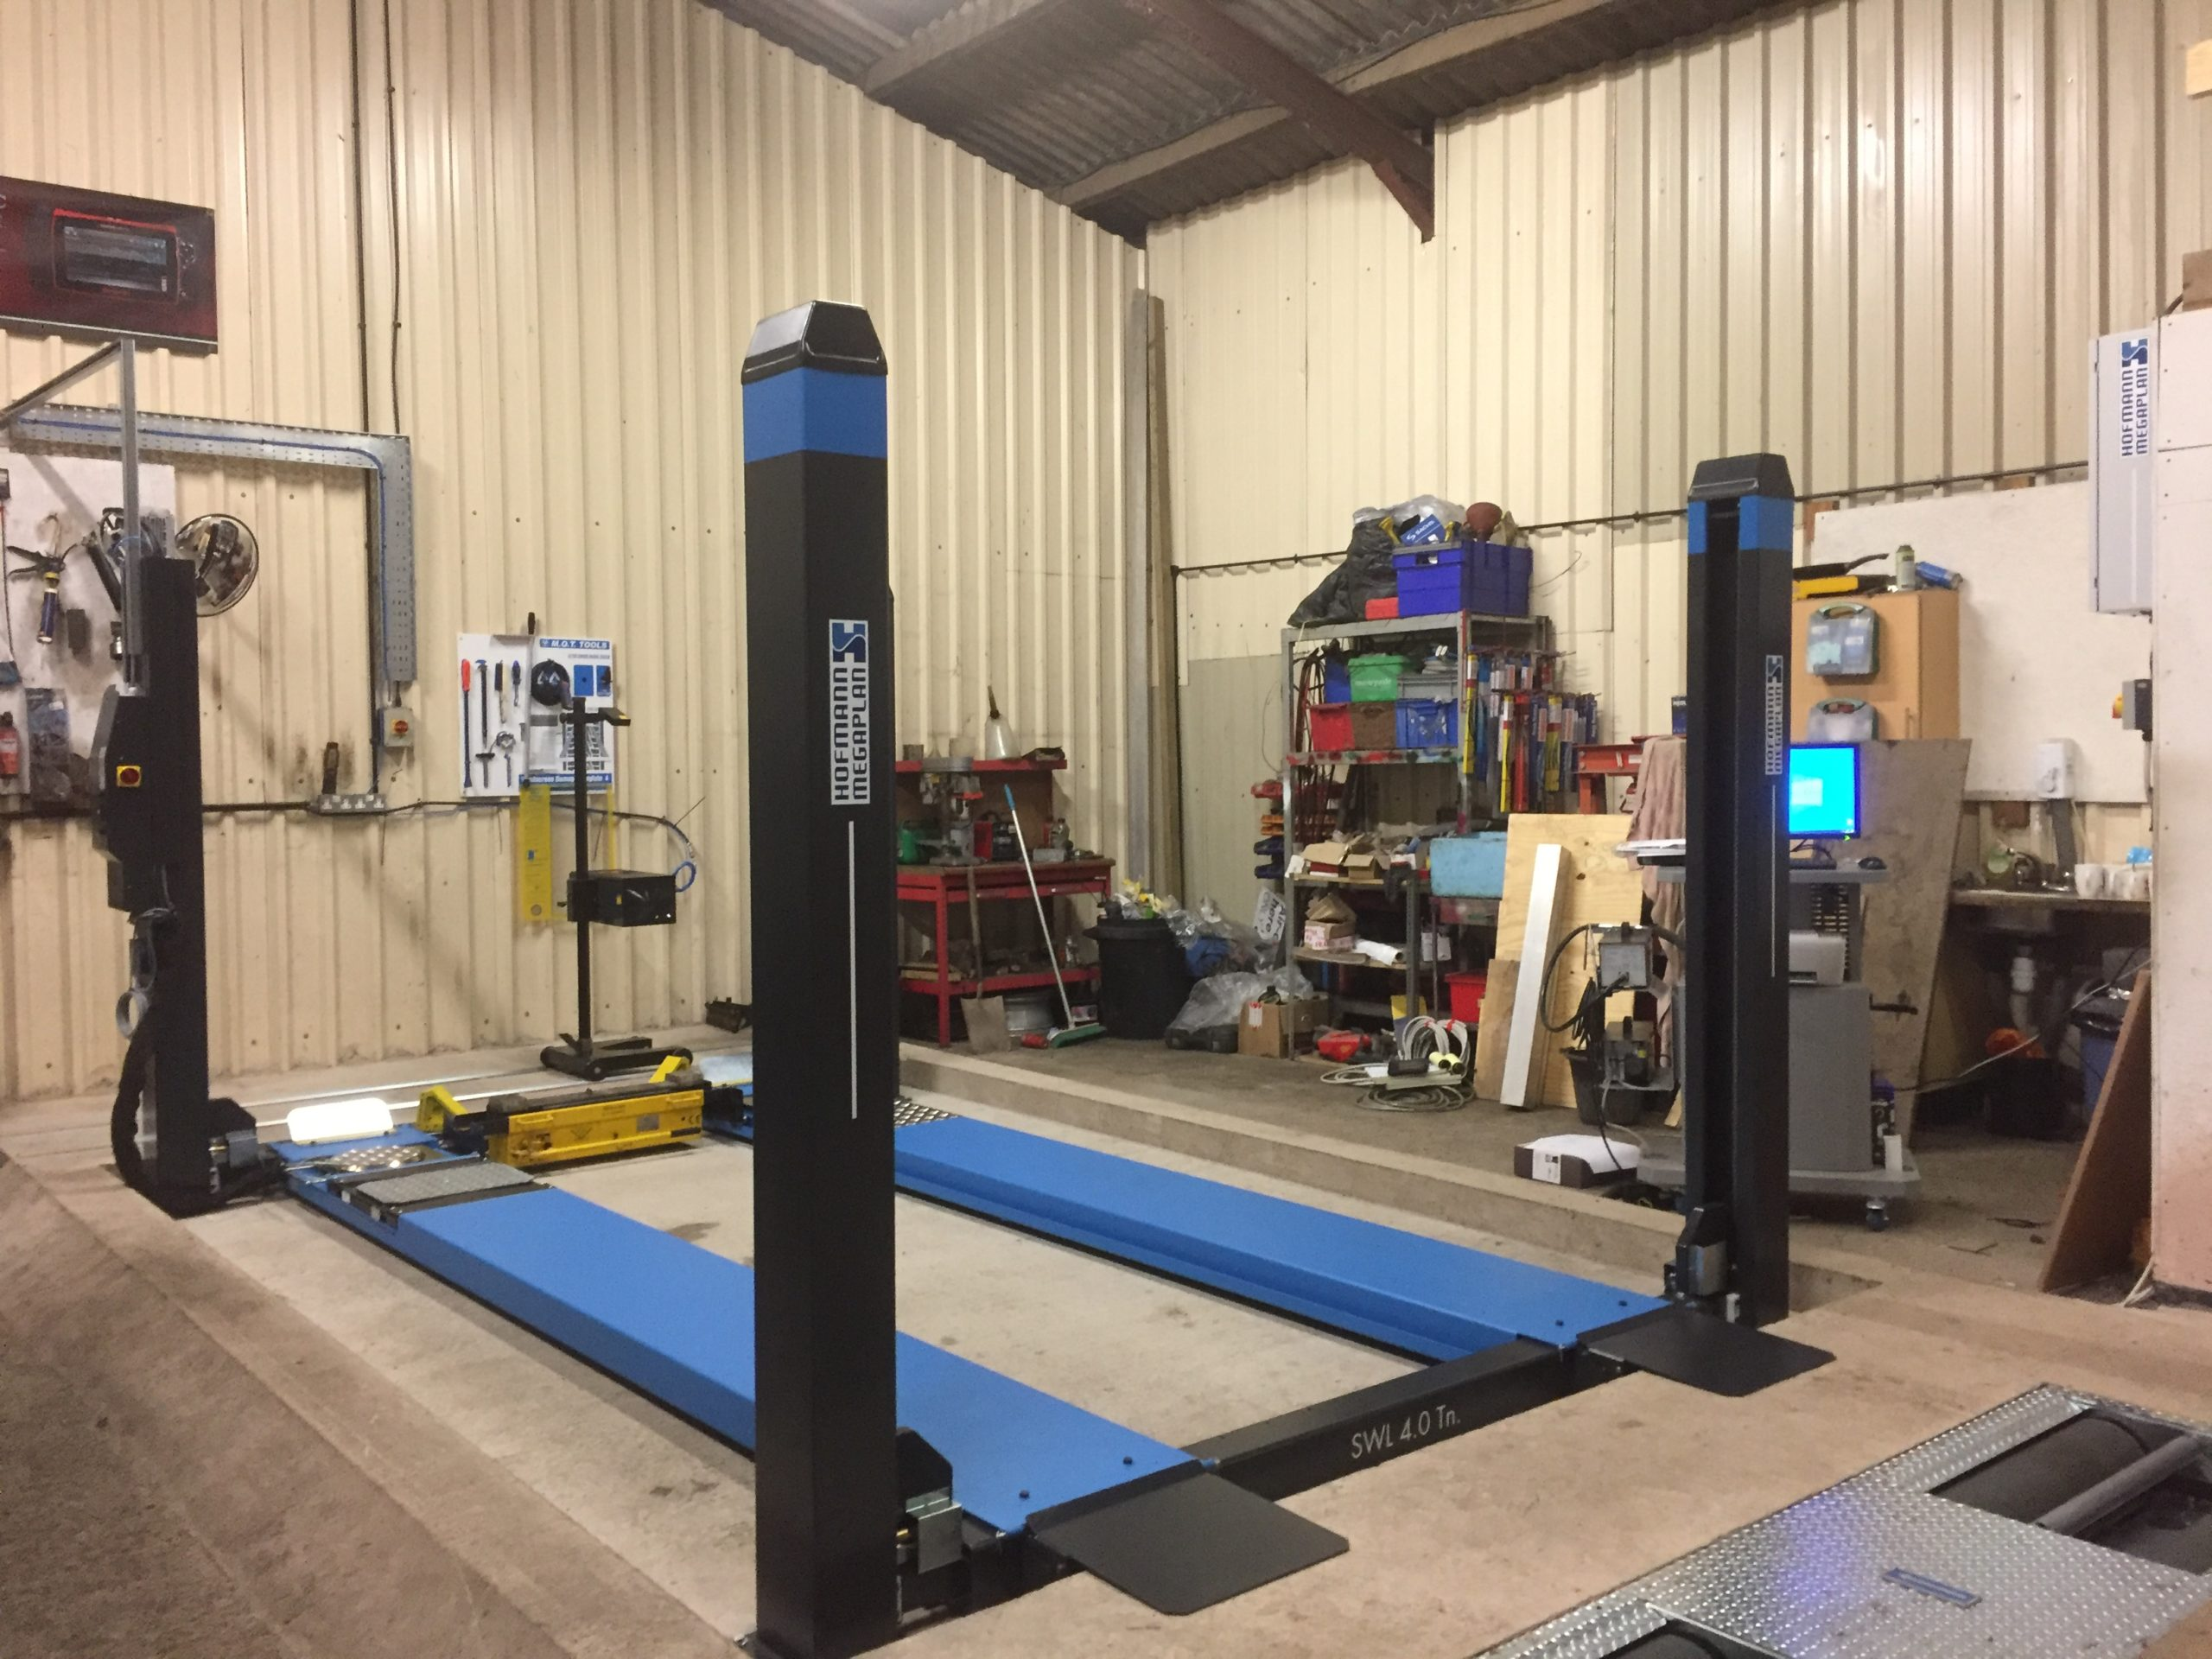 A very nice and fully completed MOT Bay installation at B&C Autos garage in Nantwich.